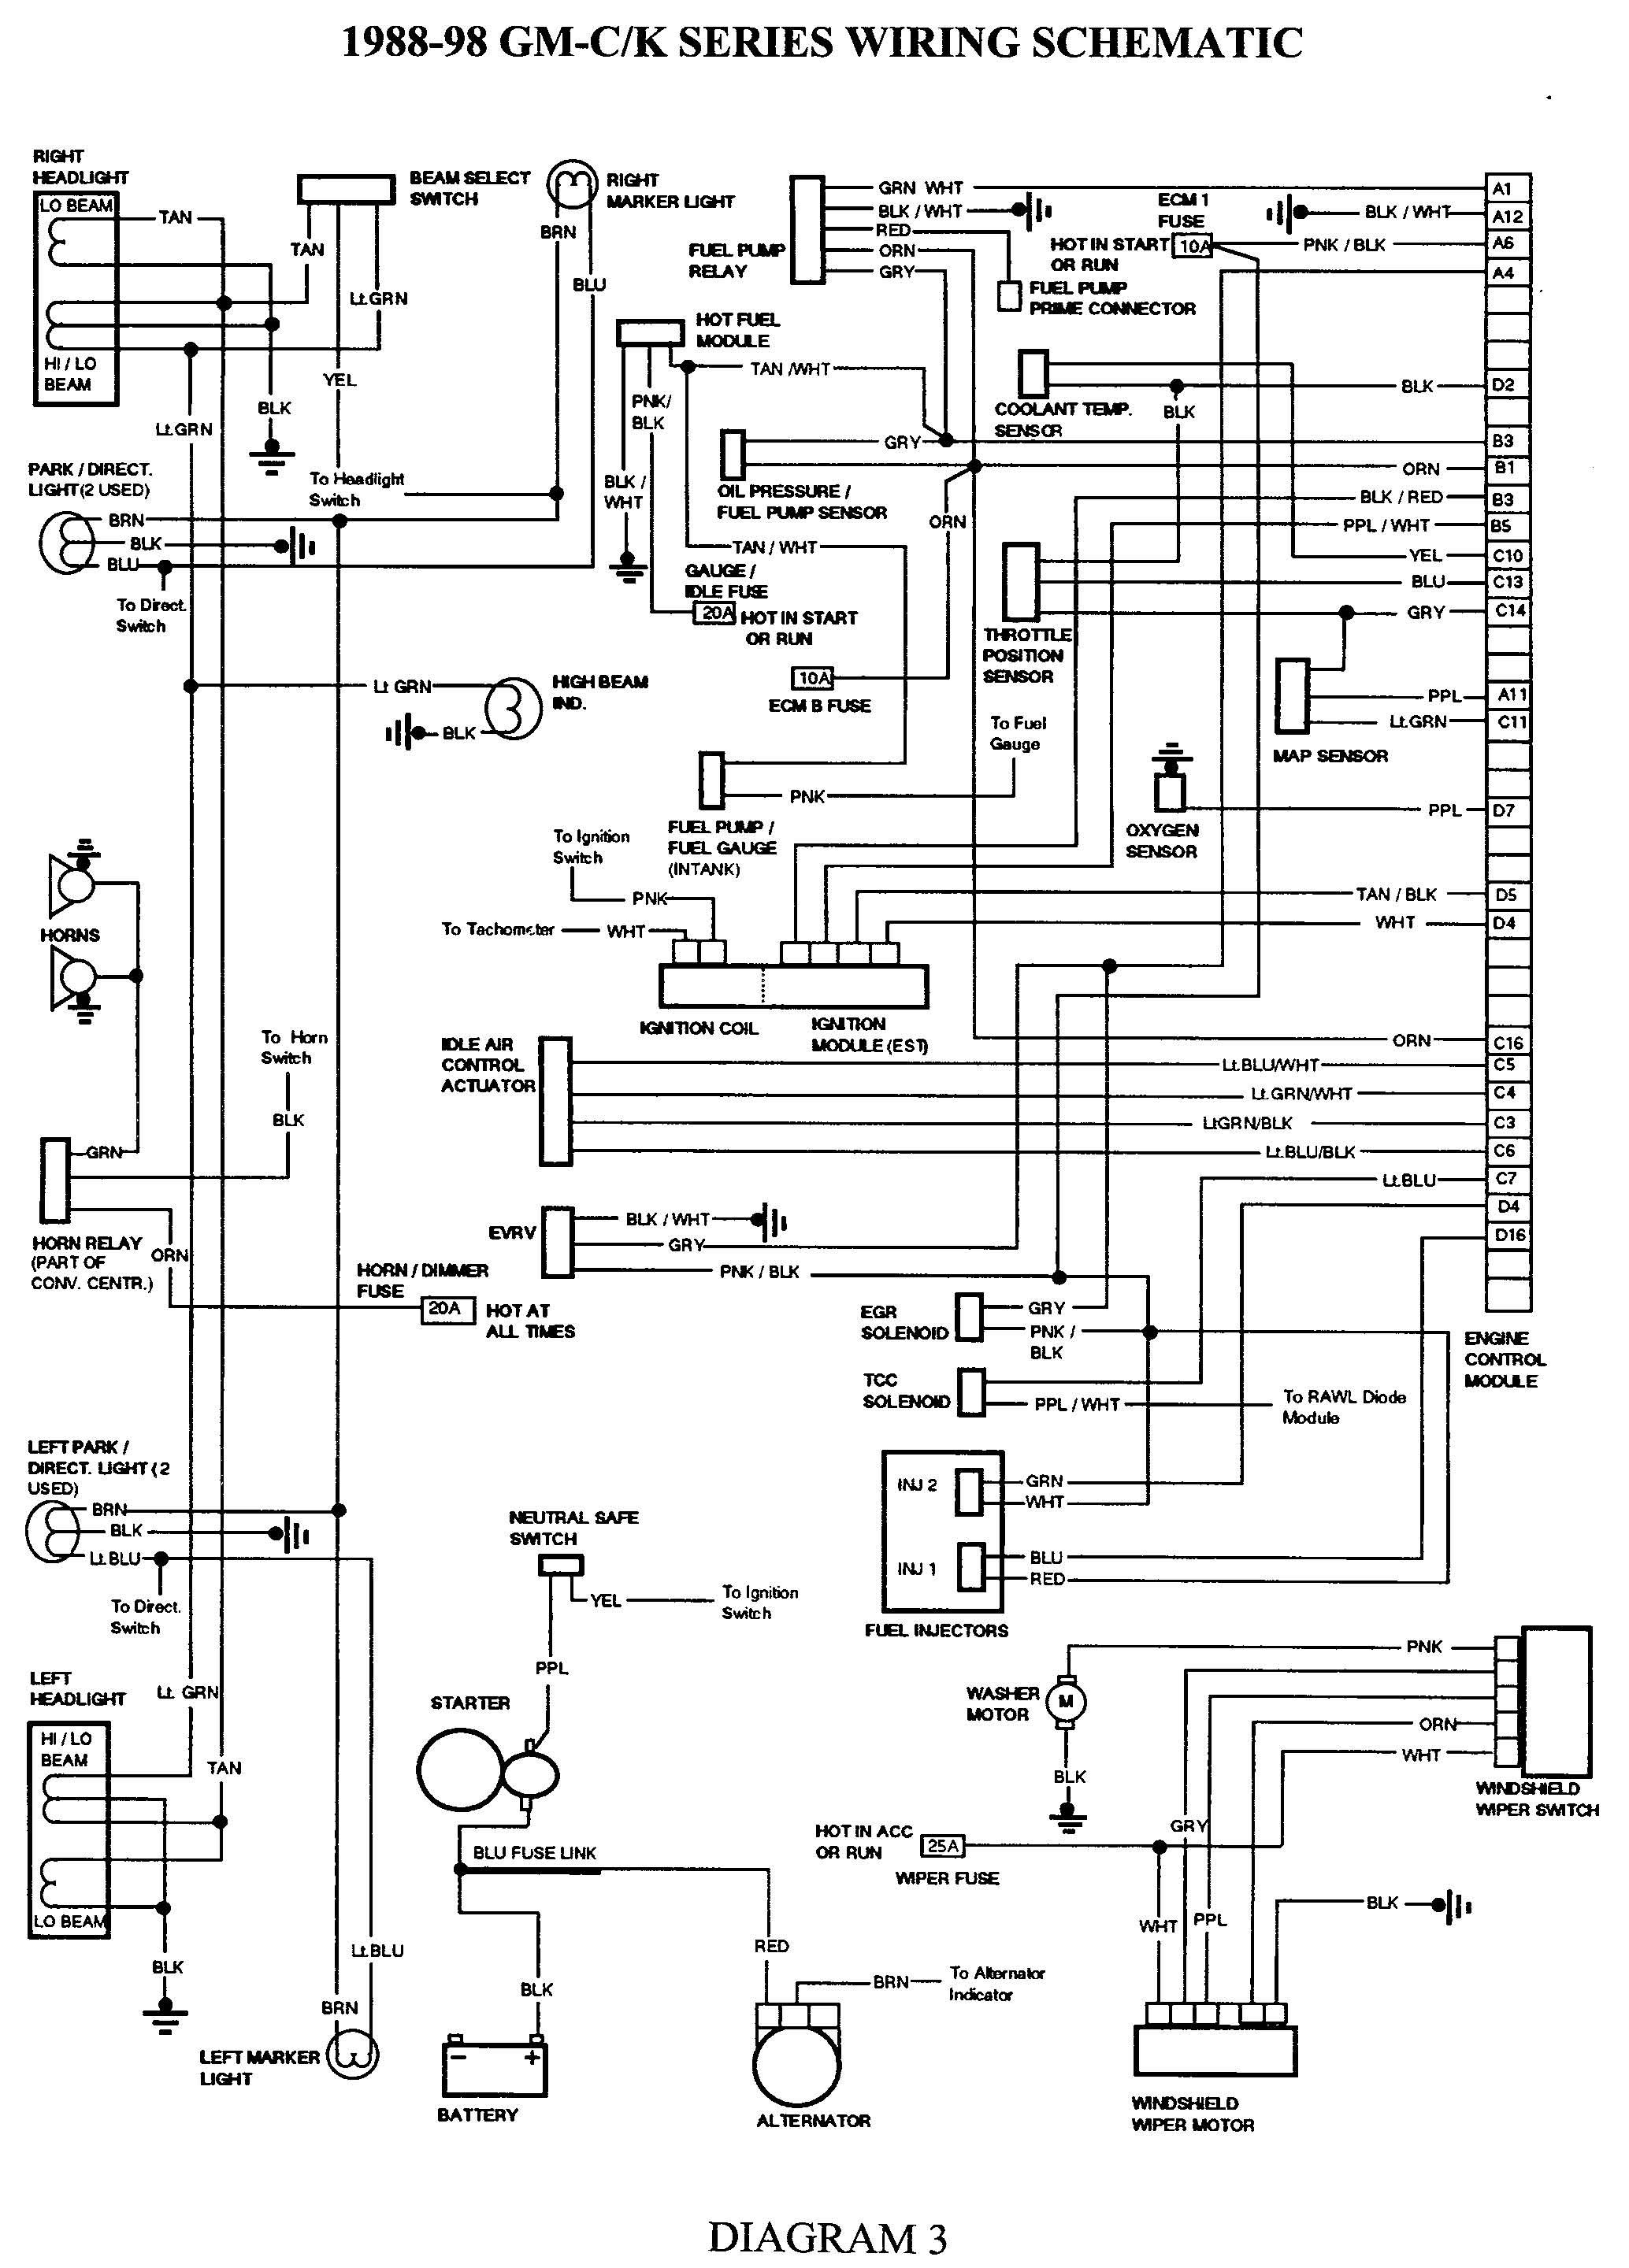 b2f2e5dbdc07dada83ef514f6d4ce3d4 gmc truck wiring diagrams on gm wiring harness diagram 88 98 kc truck wiring harness at gsmportal.co